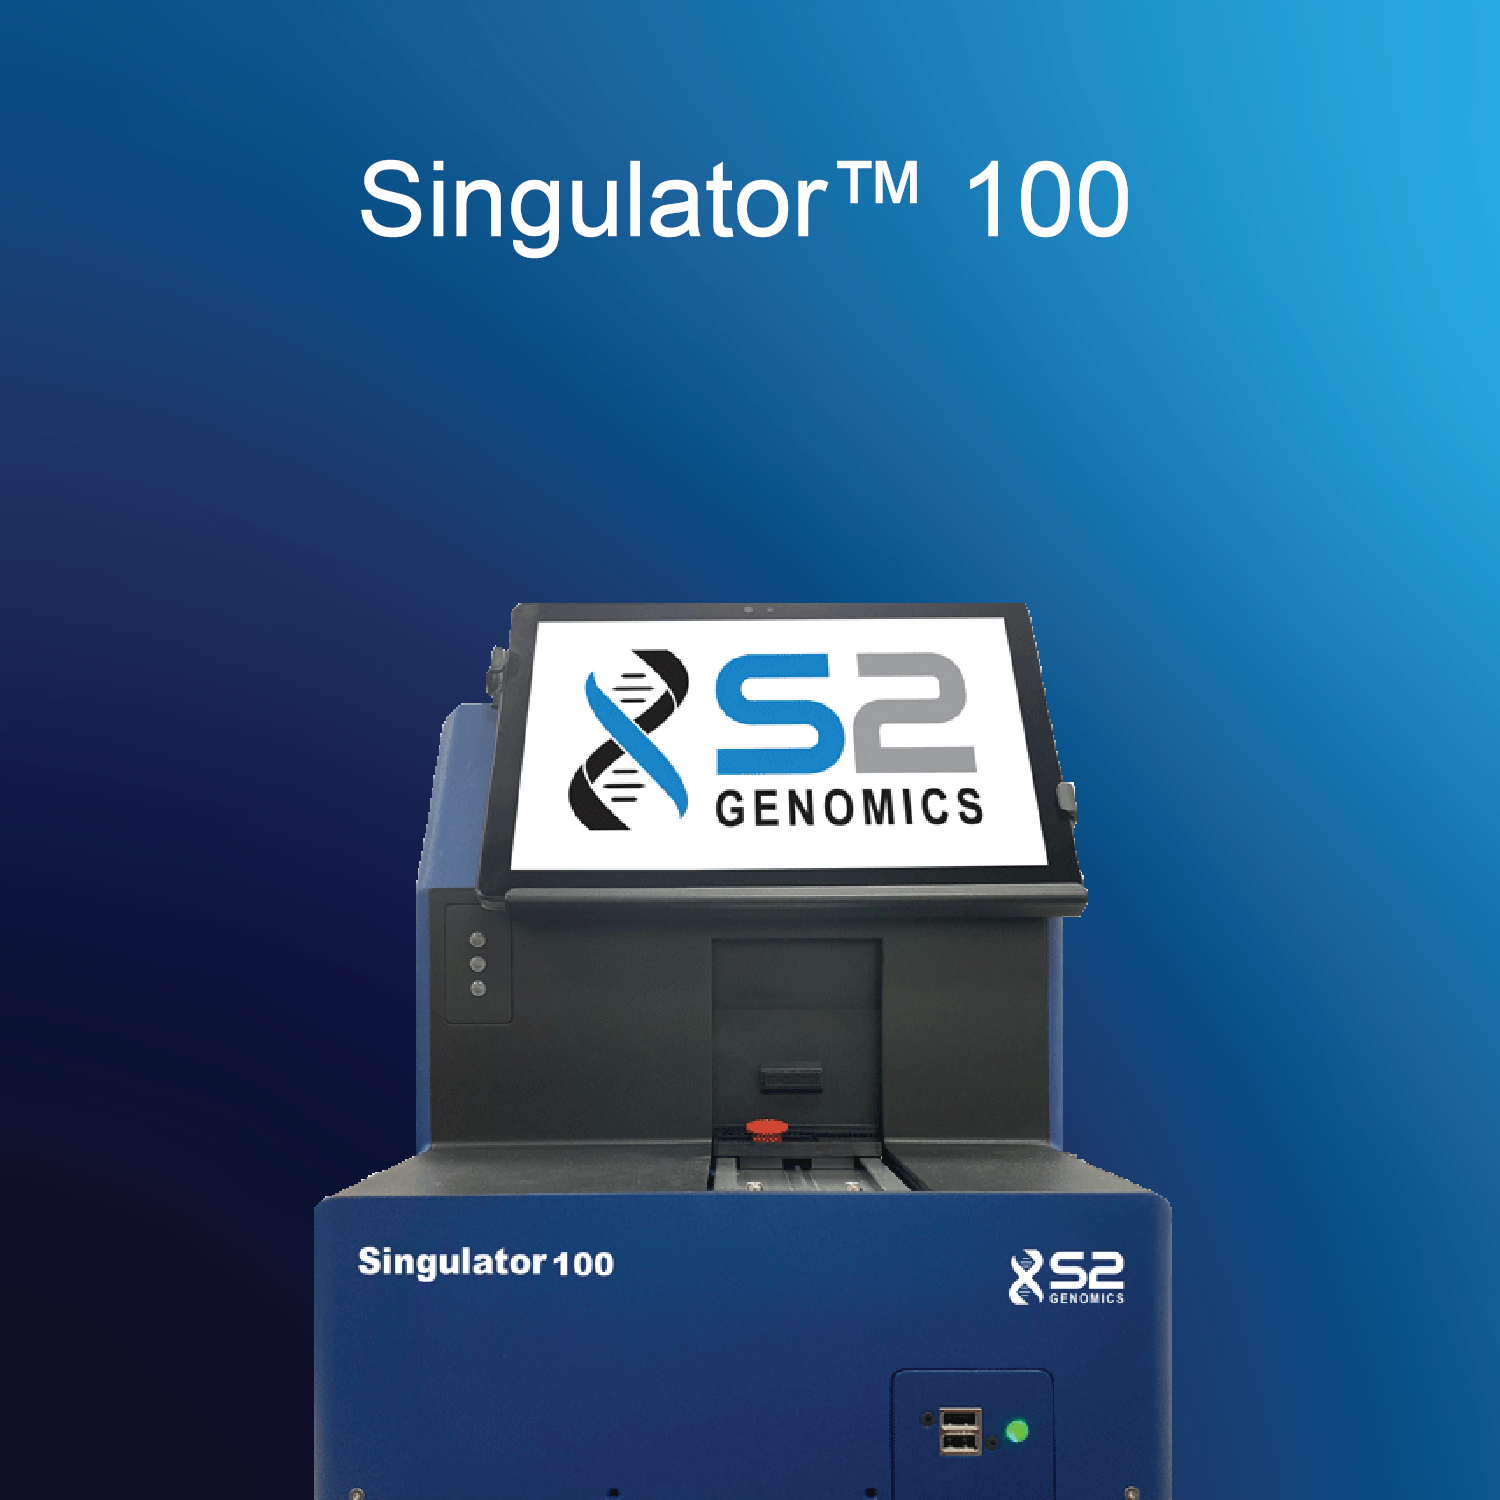 S2 Genomics Launches the Singulator™ 100 to Automate Tissue Preparation for Single-Cell and Single-Nucleus Analyses